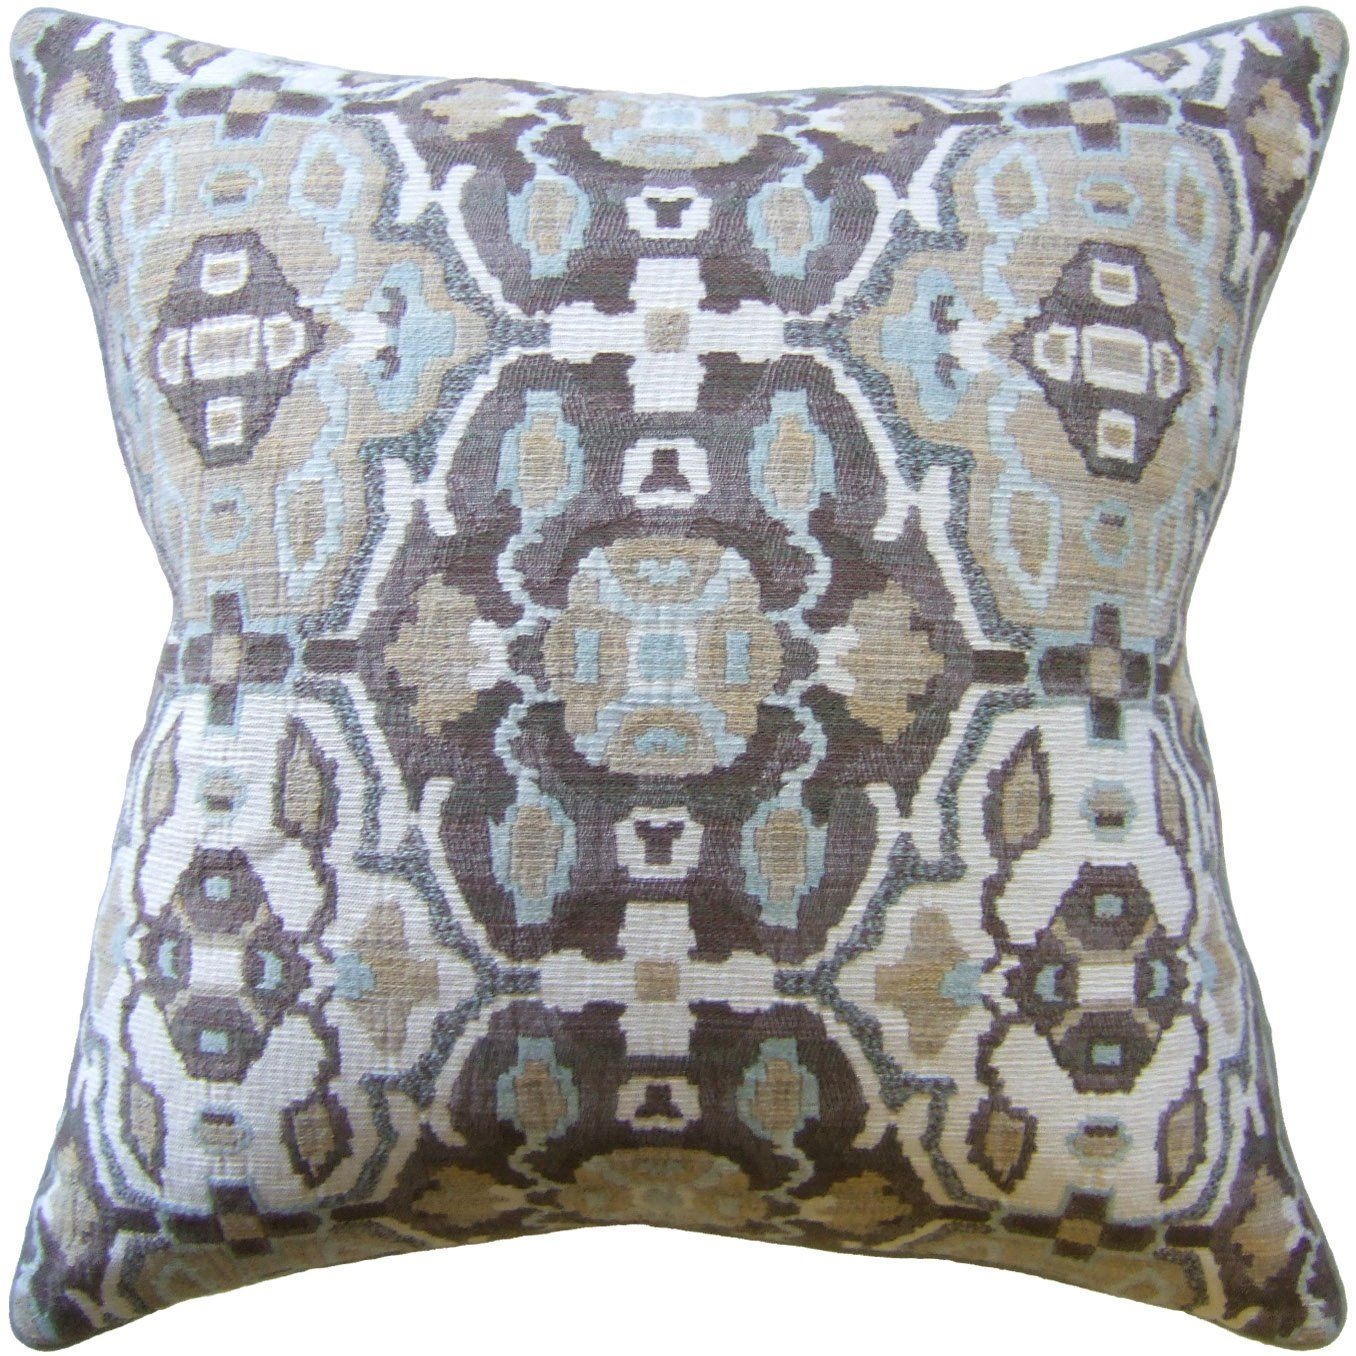 Fig Linen - Cabrillo Robin's Egg Pillow - Decorative Pillows at Fig Linens